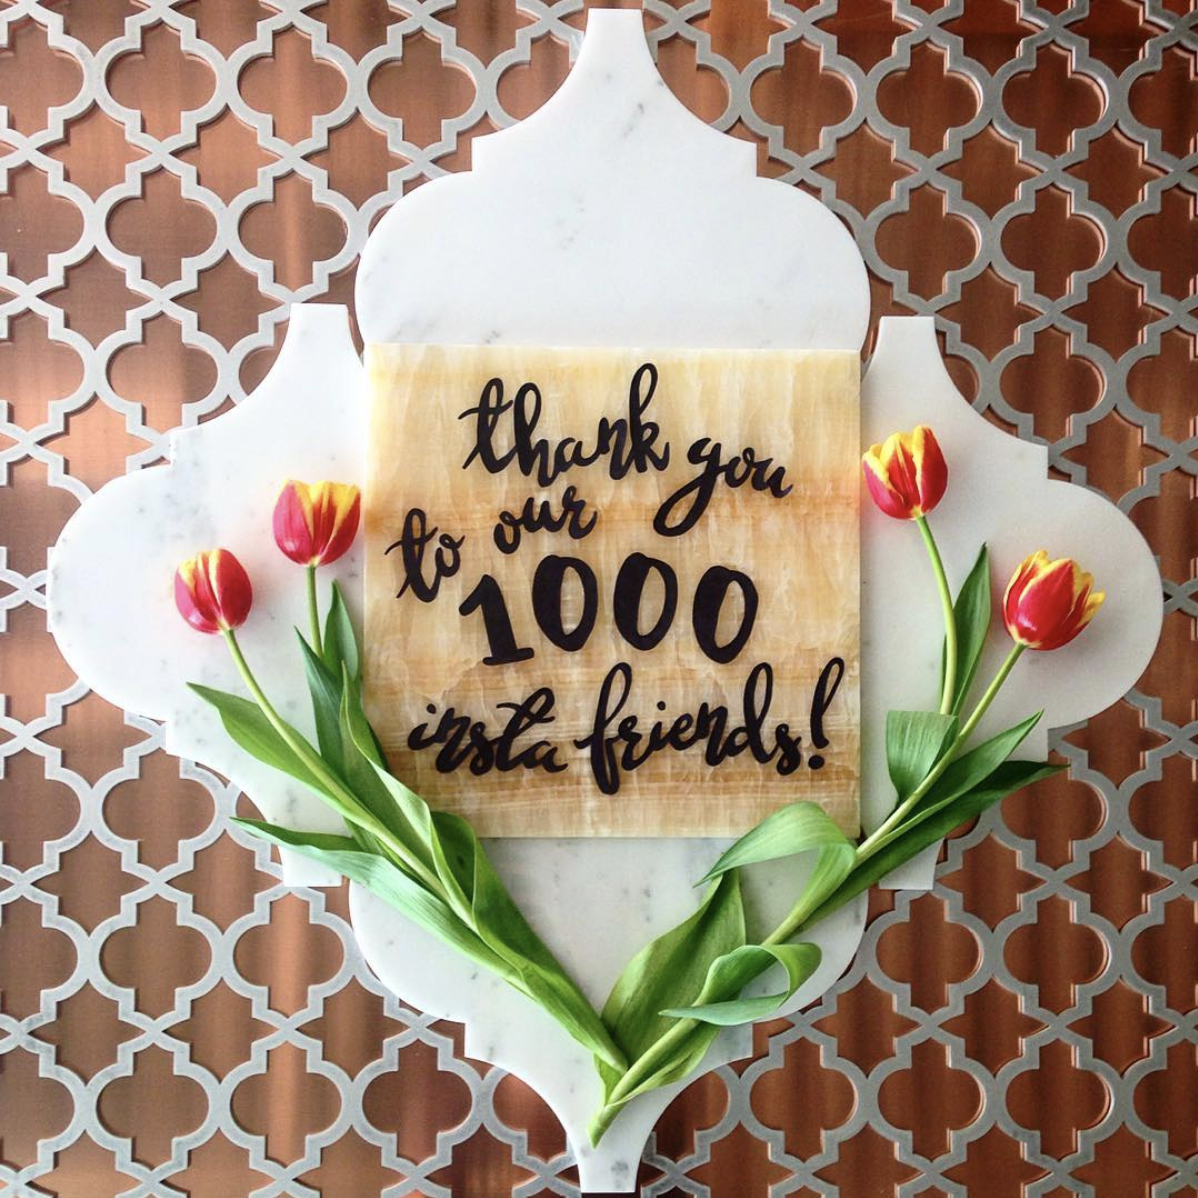 Our 1000th Instagram follower!